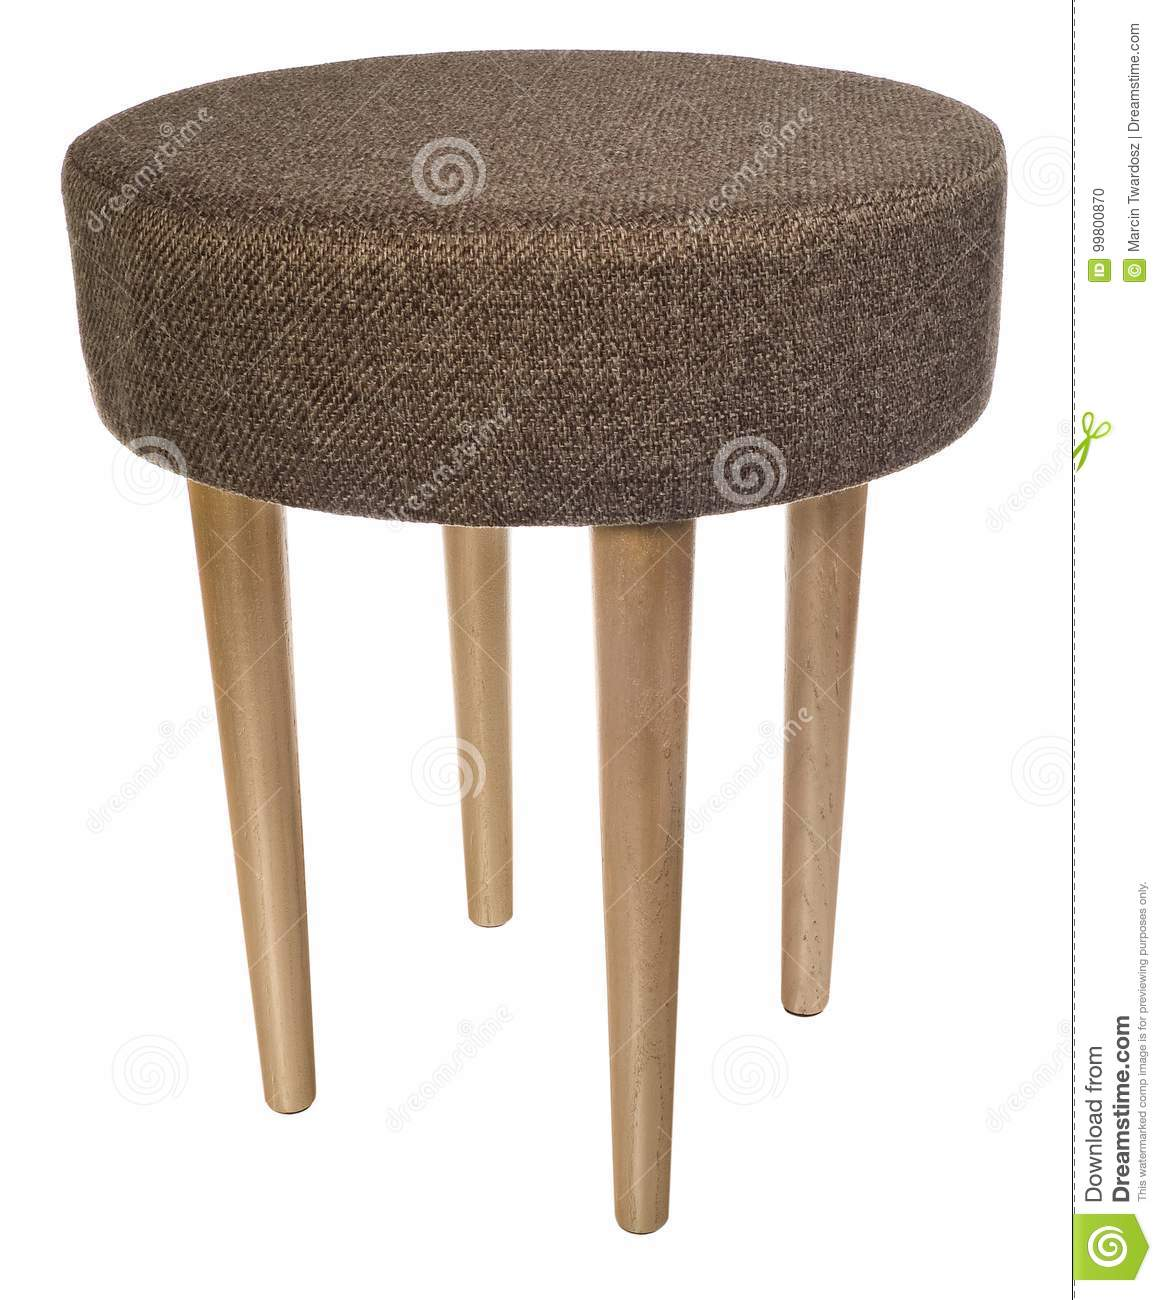 Enjoyable Handmade Stool In Gold Round Seat With Brown Material Machost Co Dining Chair Design Ideas Machostcouk